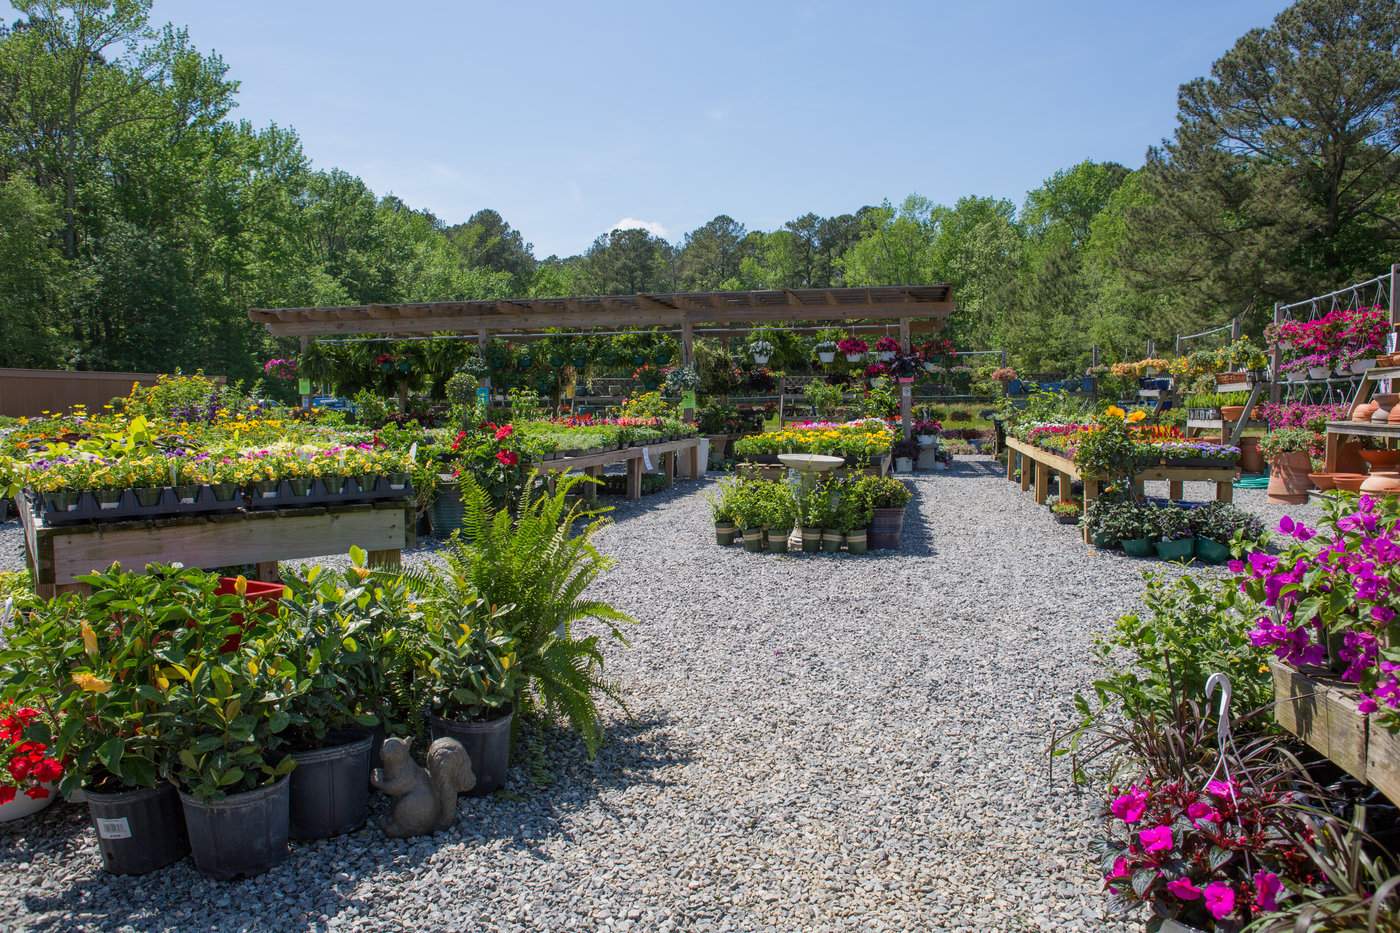 The 12,000-square-foot garden center is a return to Kathryn Tatterson's family roots with a wholesale greenhouse business.